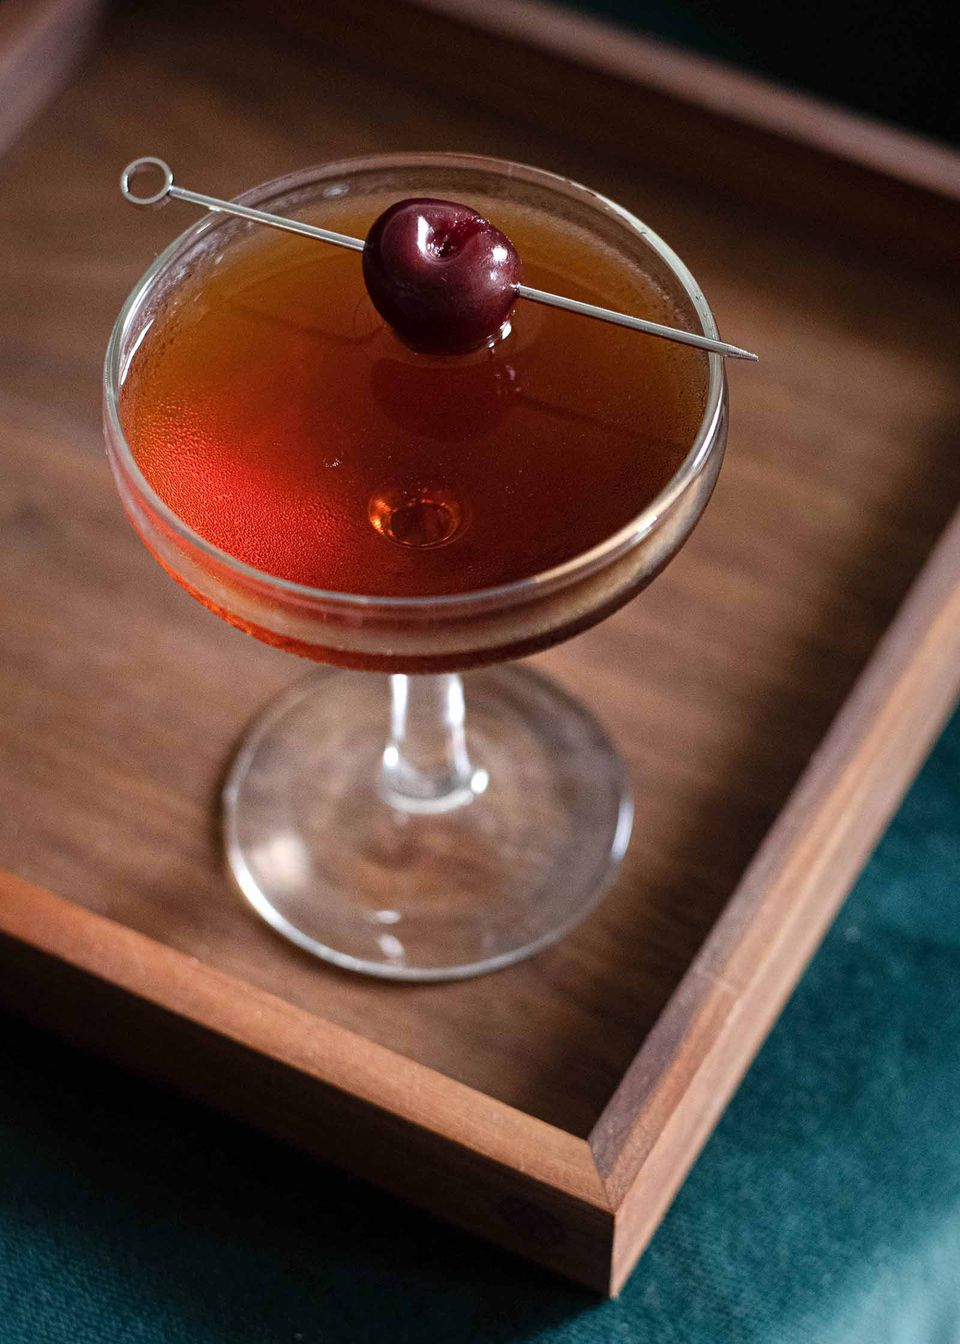 Manhattan cocktail rye whiskey, sweet vermouth, bitters in a coupe glass